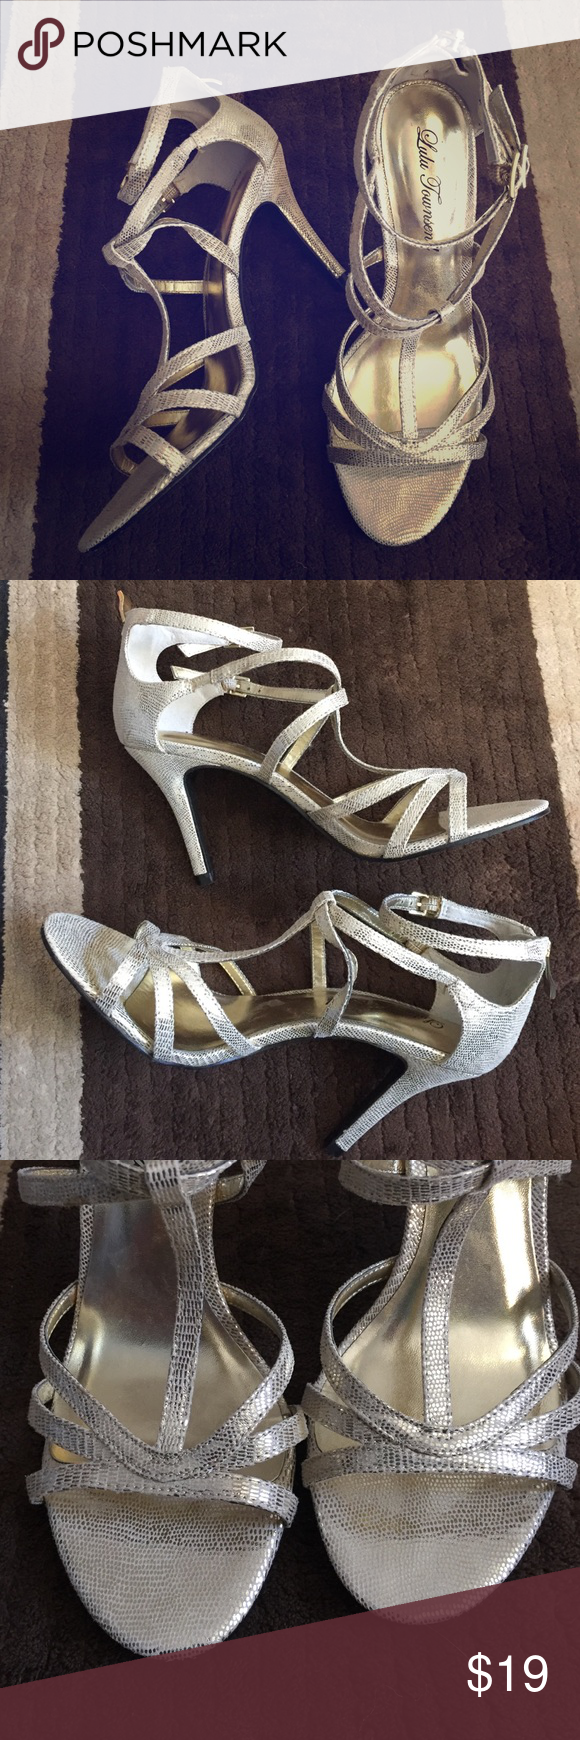 """Lulu Townsend Gold Heels (Sz 6.5) Strappy gold heels perfect for that evening event. 3.5"""" height. Double ankle buckles. Back heel zipper. Used once. Lulu Townsend Shoes Heels"""